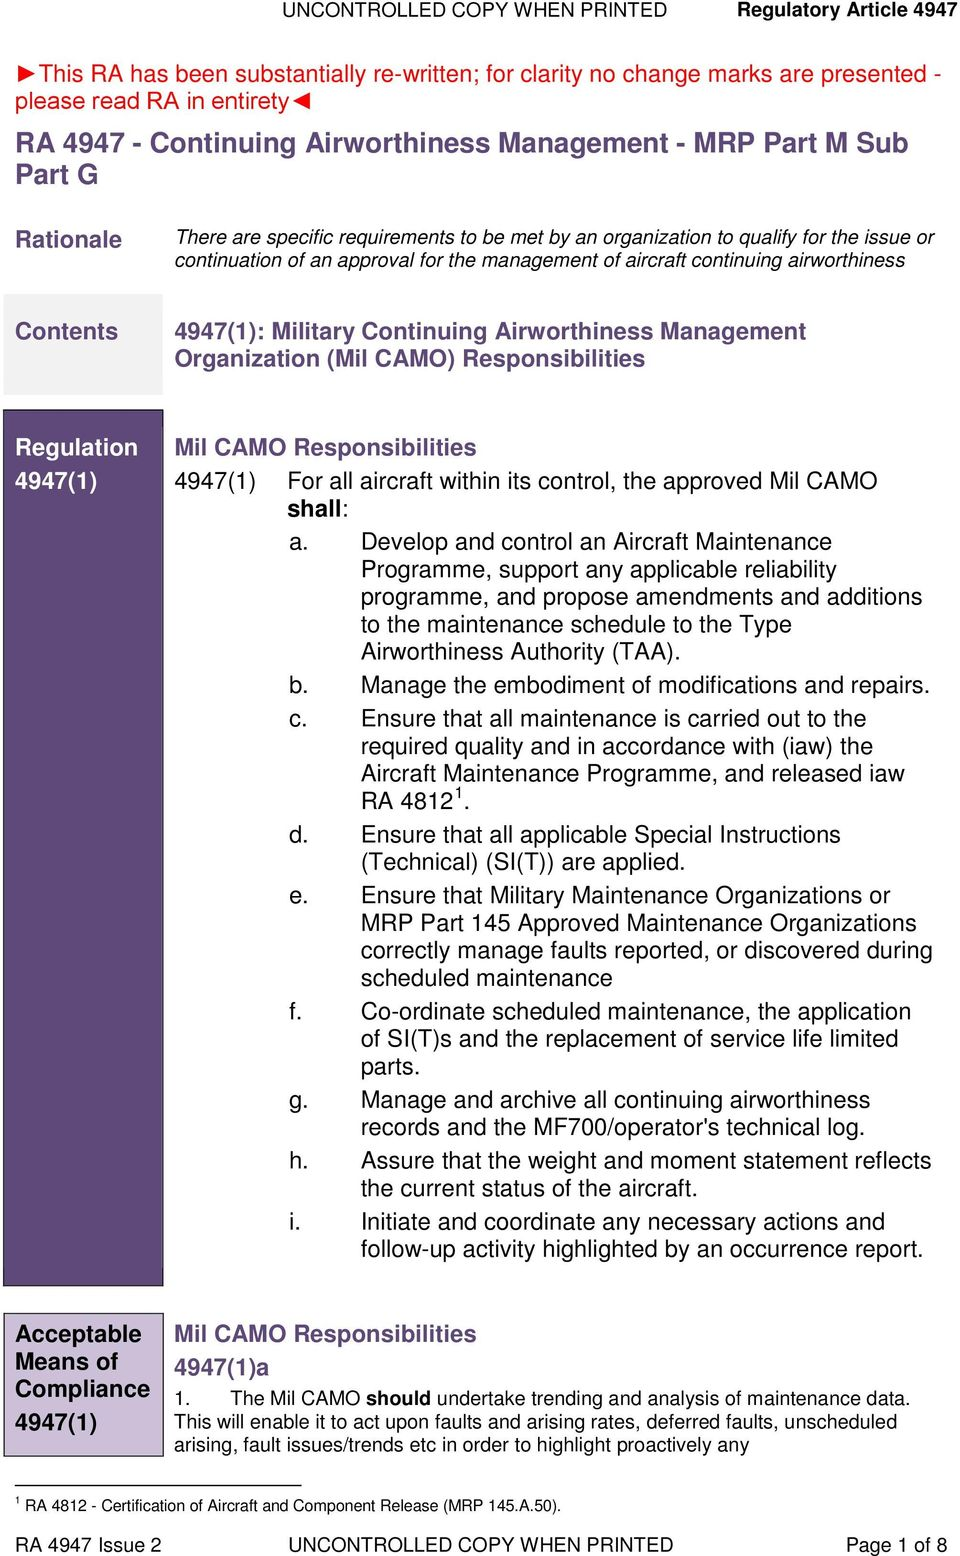 aircraft continuing airworthiness Contents : Military Continuing Airworthiness Management Organization (Mil CAMO) Responsibilities Regulation Mil CAMO Responsibilities For all aircraft within its